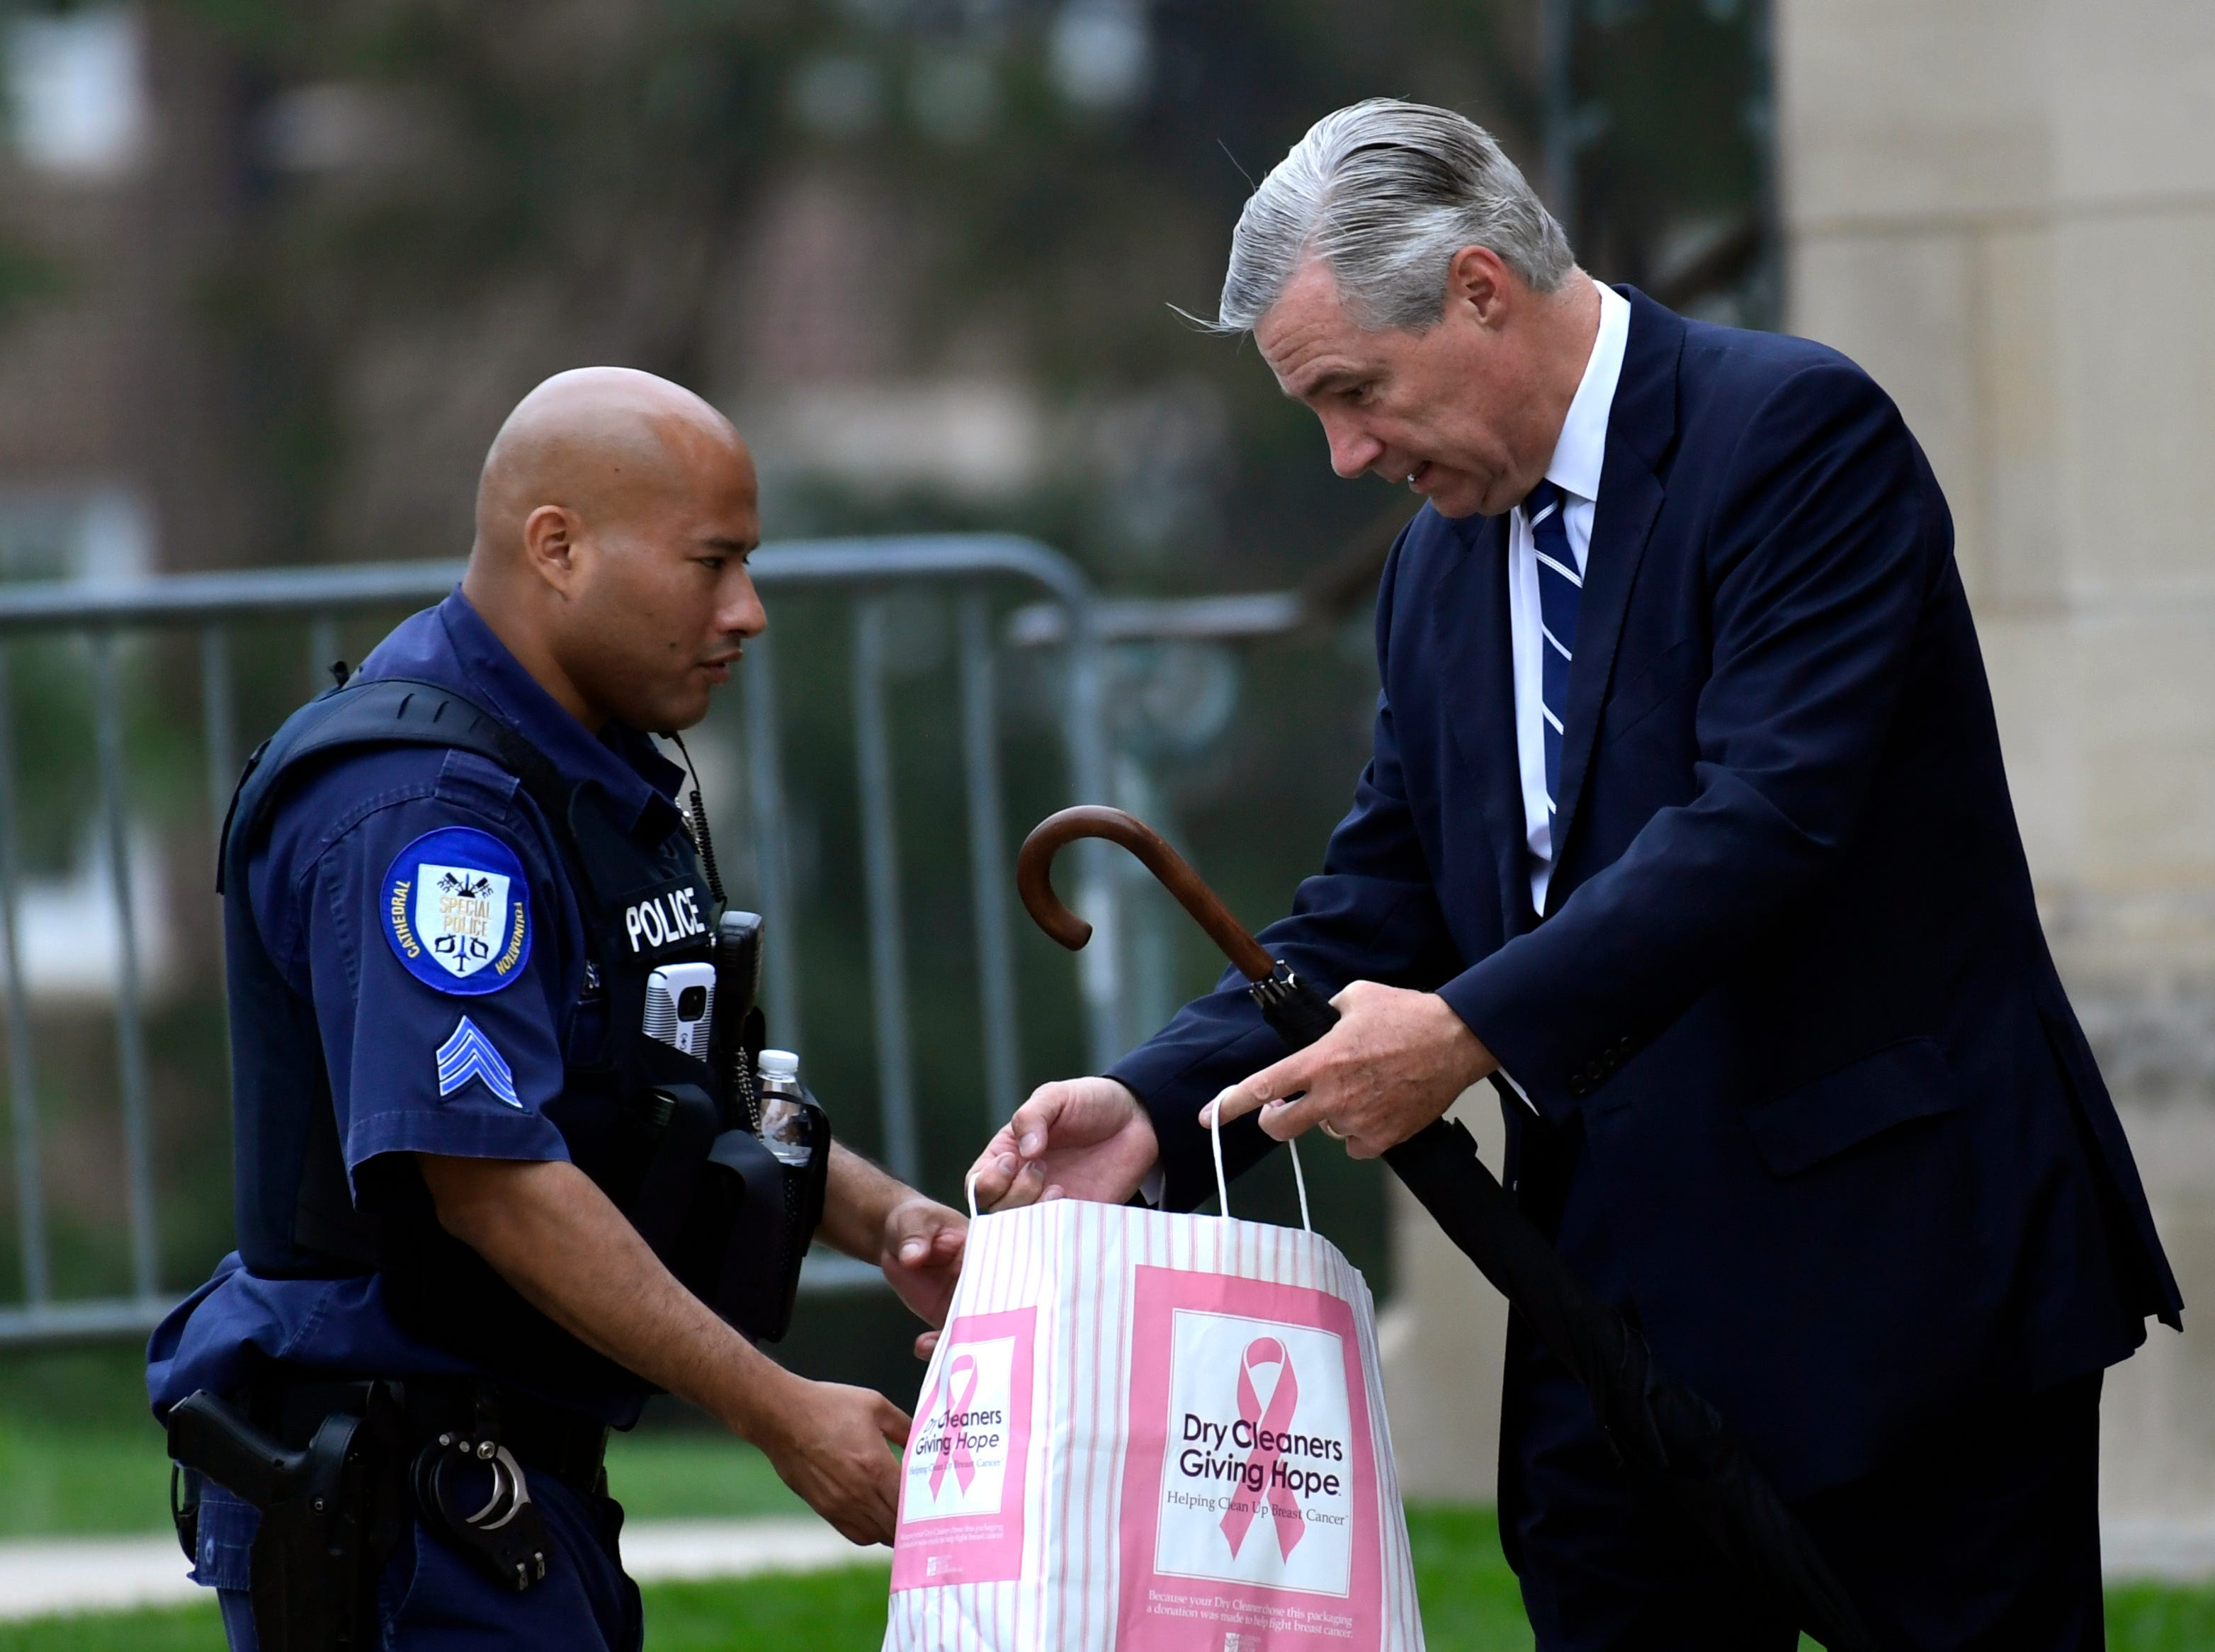 Sen. Sheldon Whitehouse, D-R.I., right, goes through security as he arrives to attend a memorial service for Sen. John McCain, R-Ariz., at the Washington National Cathedral in Washington, Saturday, Sept. 1, 2018. McCain died Aug. 25 from brain cancer at age 81. (AP Photo/Susan Walsh)